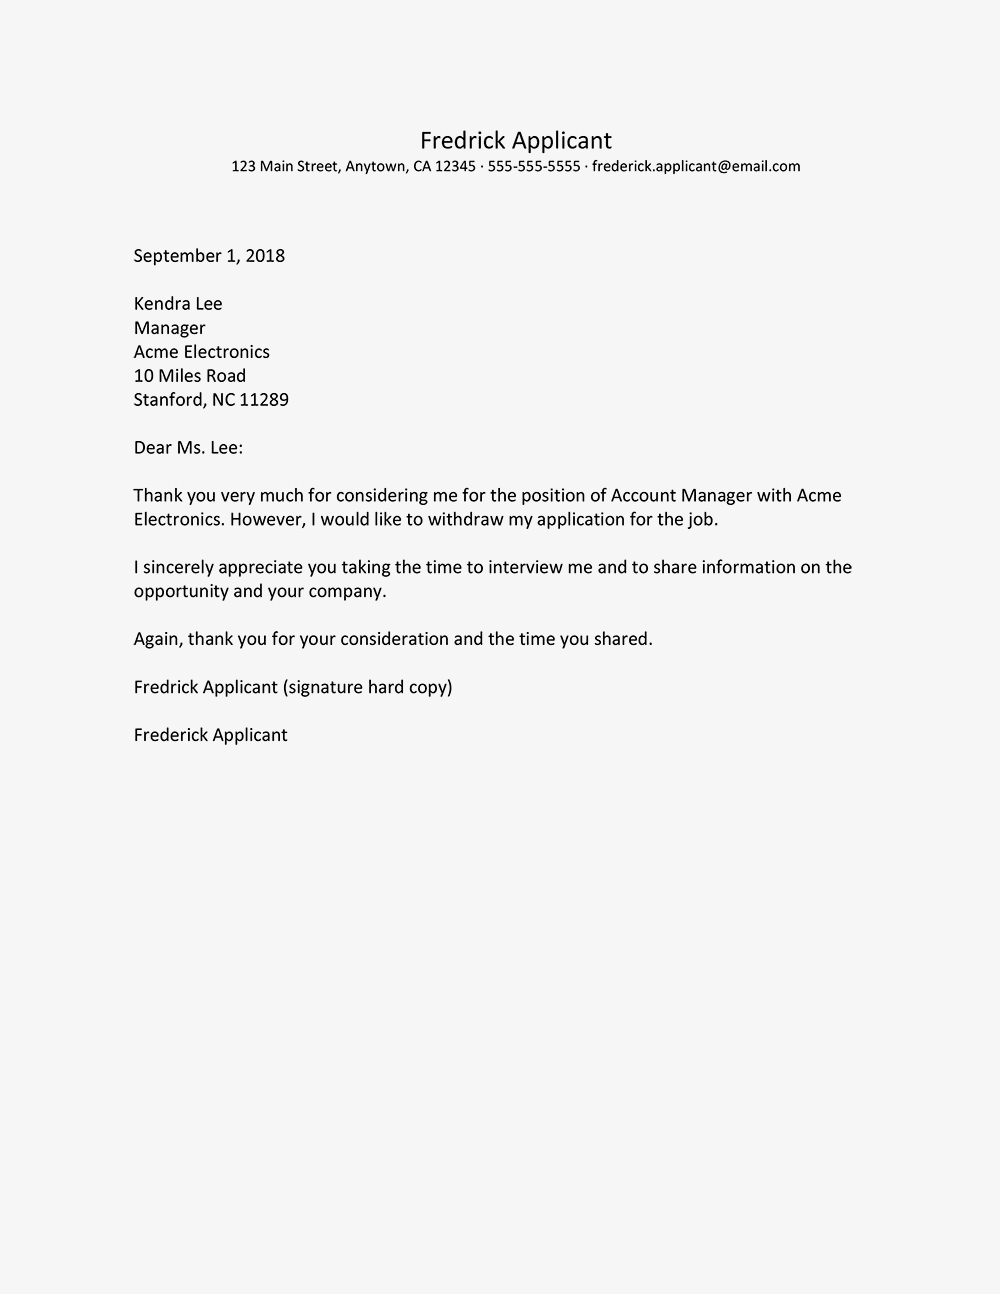 withdrawal from school letter template example-v1 5ba4f9604cedfd0025e0e729 14-q